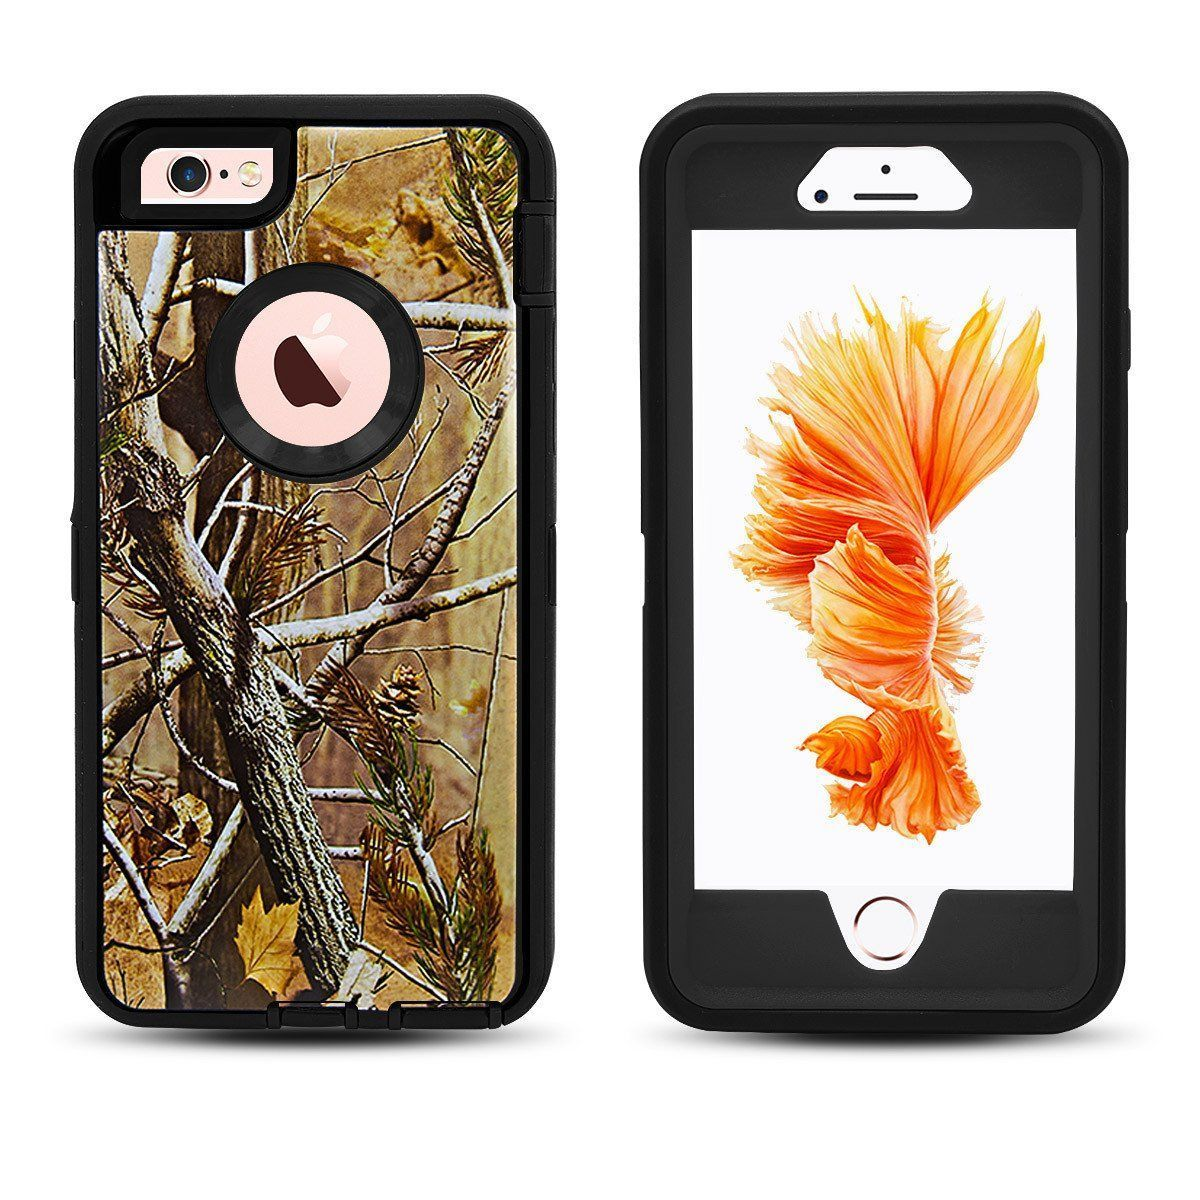 DualPro Protector Case for iPhone 6 Plus - Camouflage Black